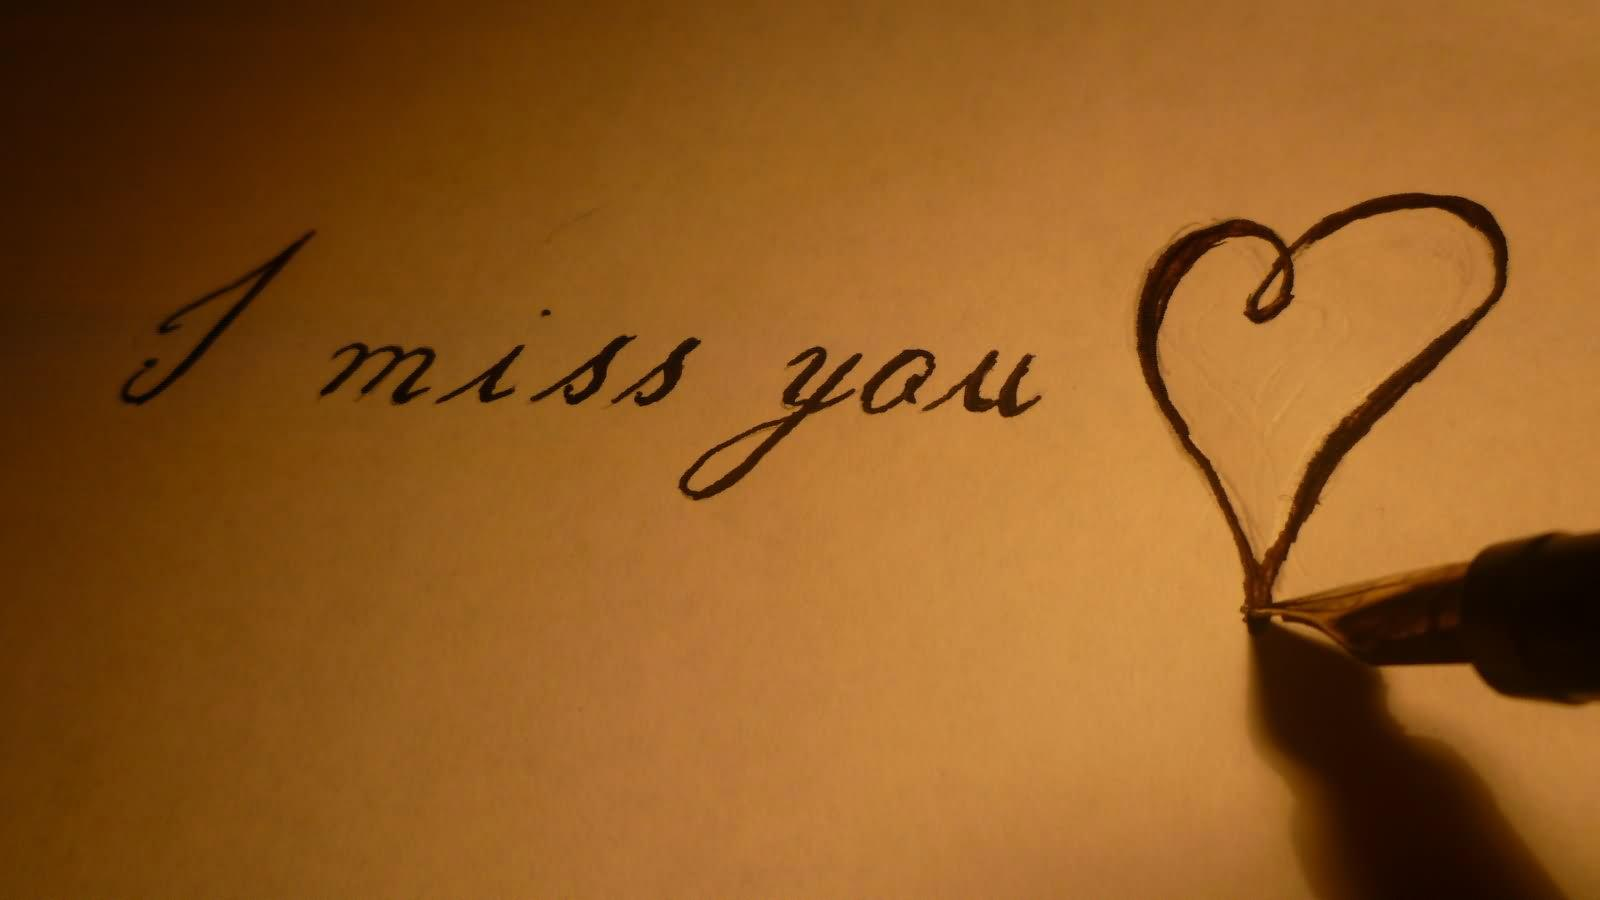 HD Quality Miss You Images, Miss You Wallpapers HD Base 1600x900